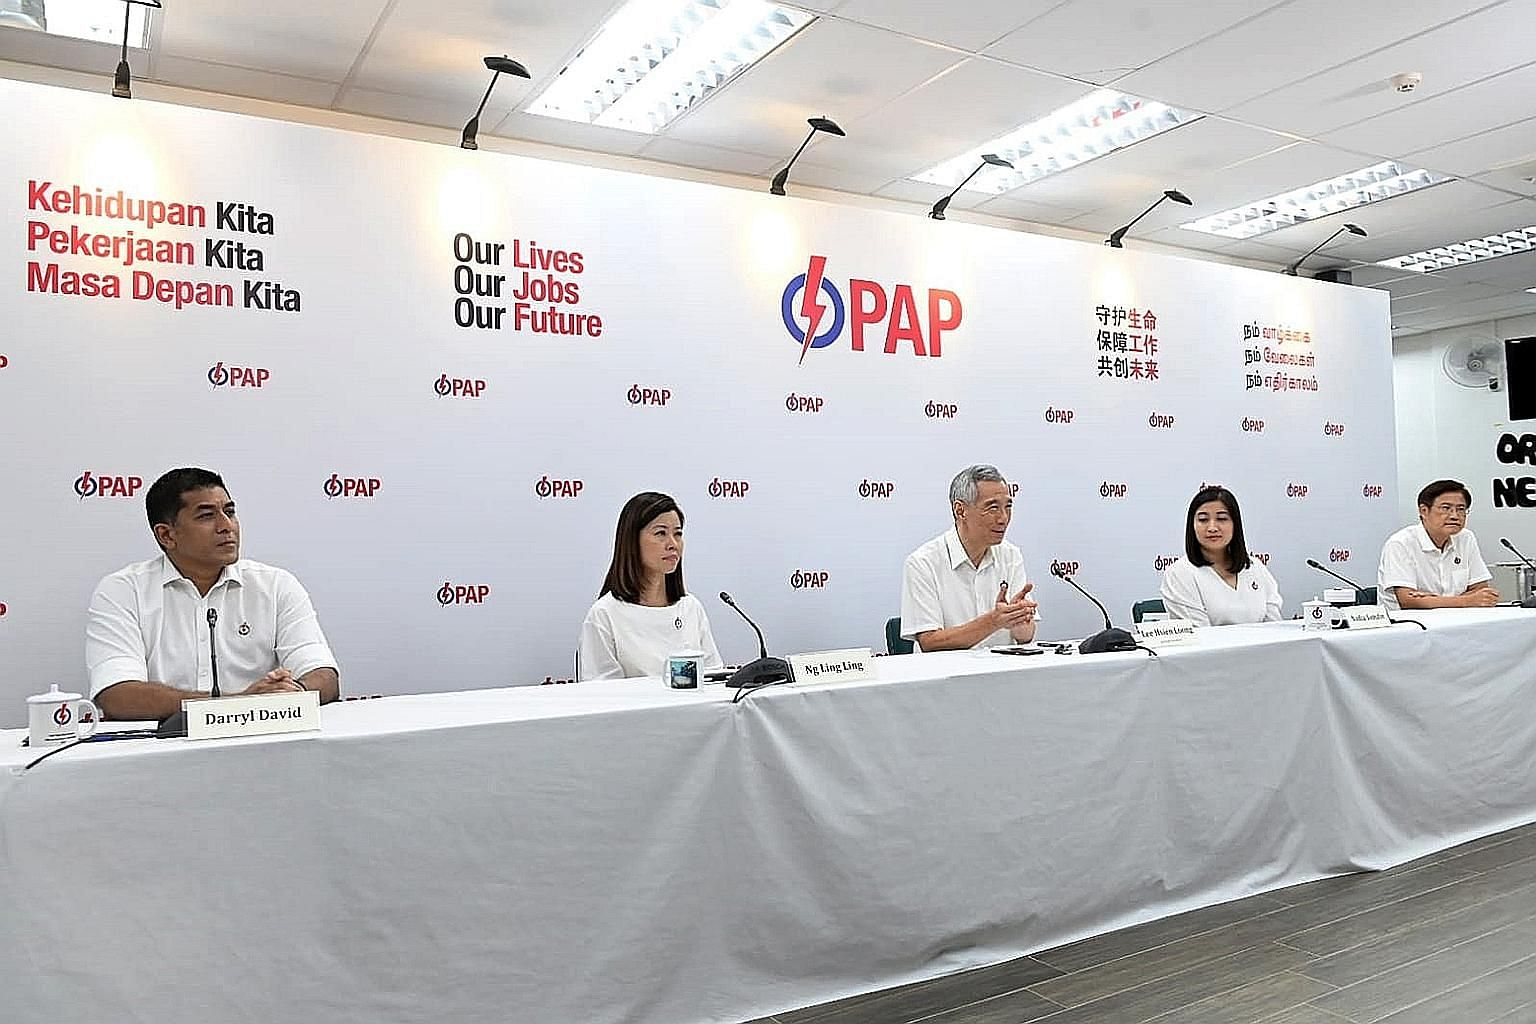 Prime Minister Lee Hsien Loong at yesterday's unveiling of candidates for Ang Mo Kio GRC, which he helms. The other members of the PAP's team in Ang Mo Kio GRC are (from left) Mr Darryl David, Ms Ng Ling Ling, Ms Nadia Ahmad Samdin and Mr Gan Thiam P